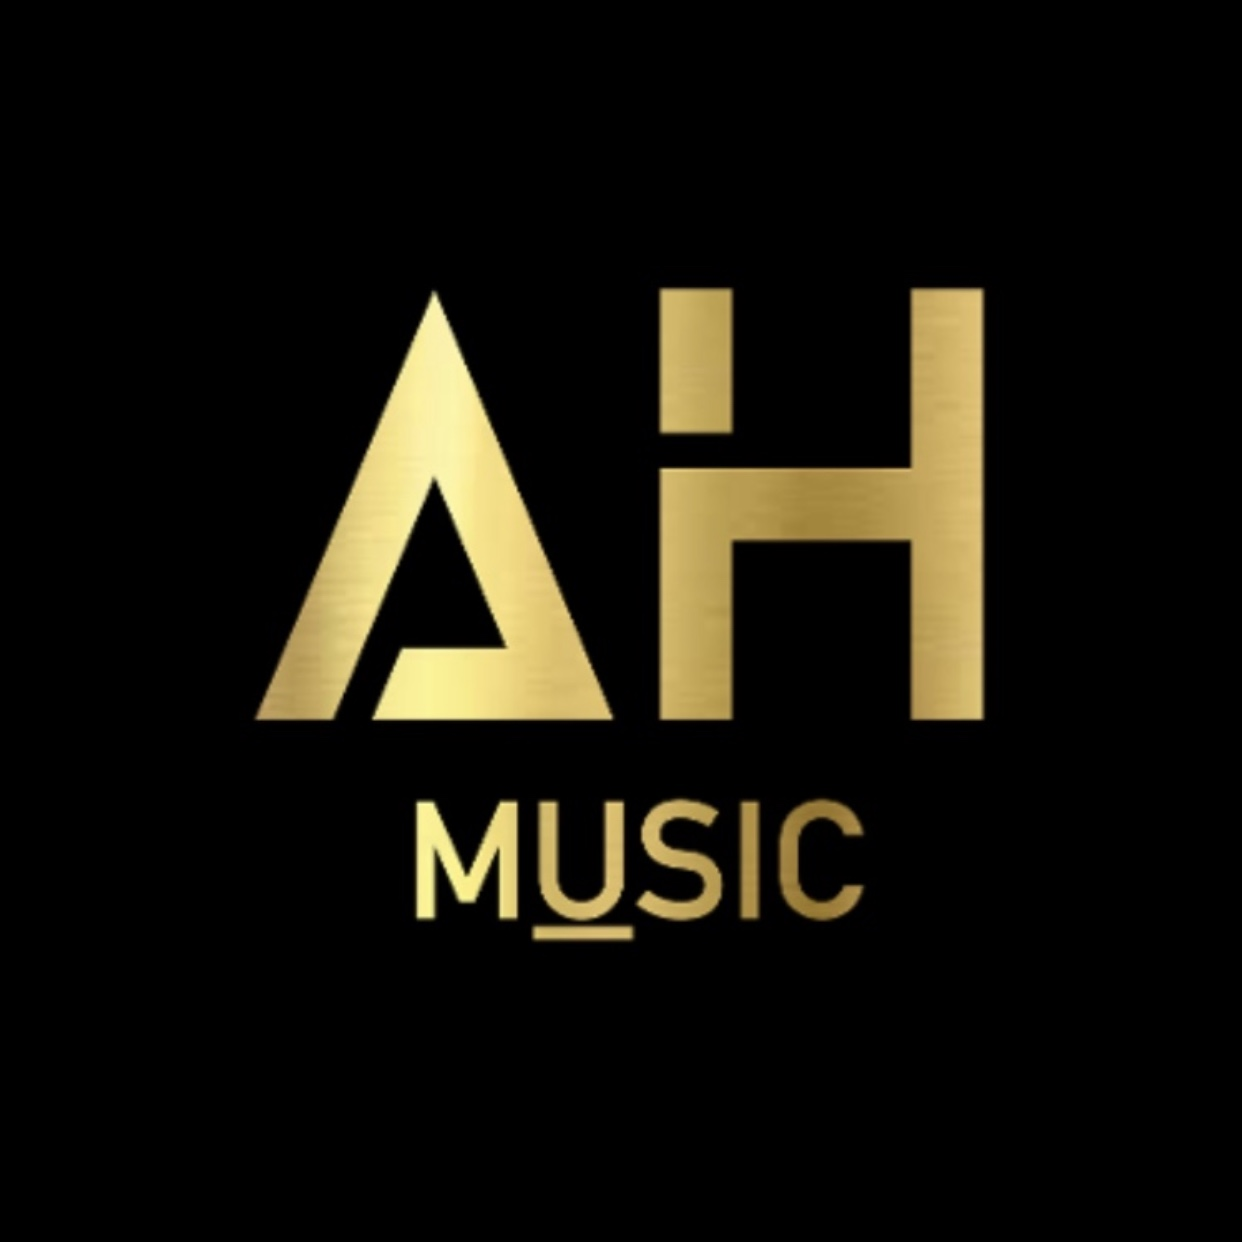 AH MUSIC OWN BRAND